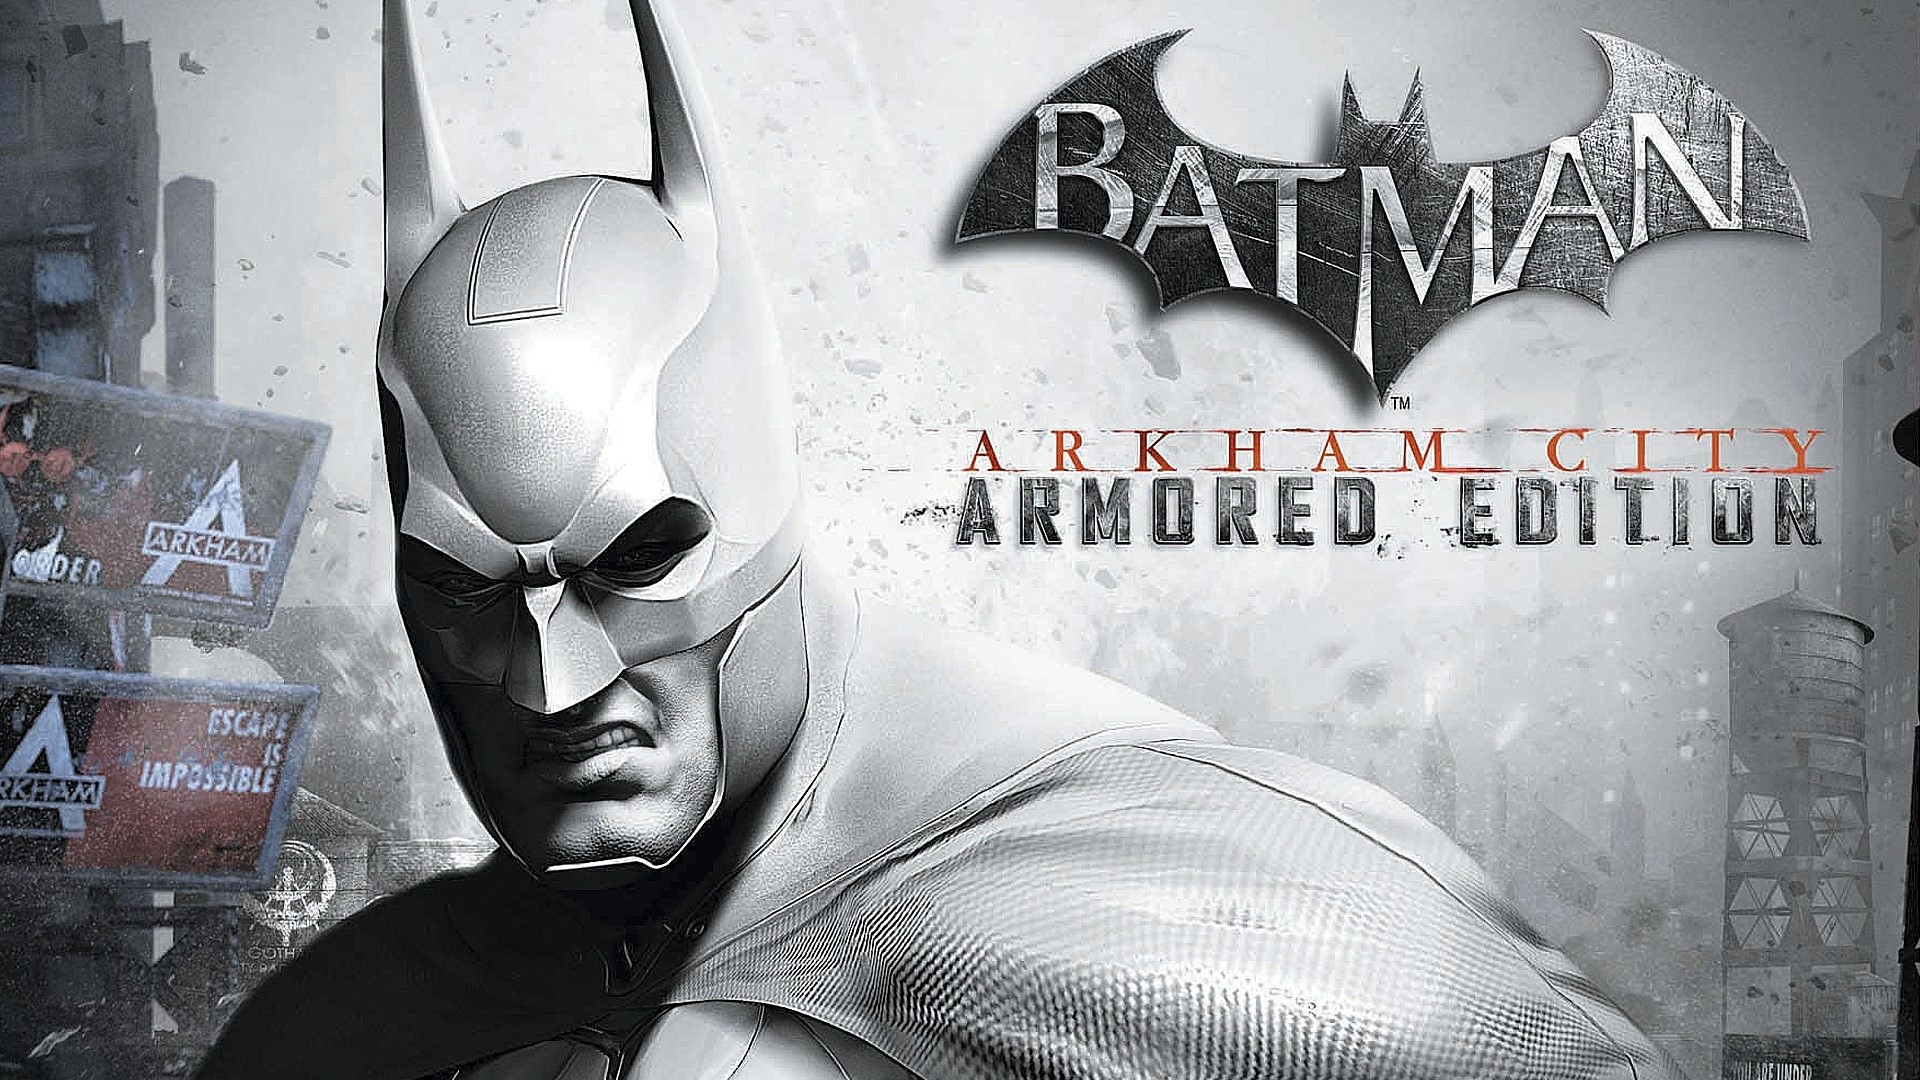 Fondos de pantalla Batman Arkham City Armored Edition